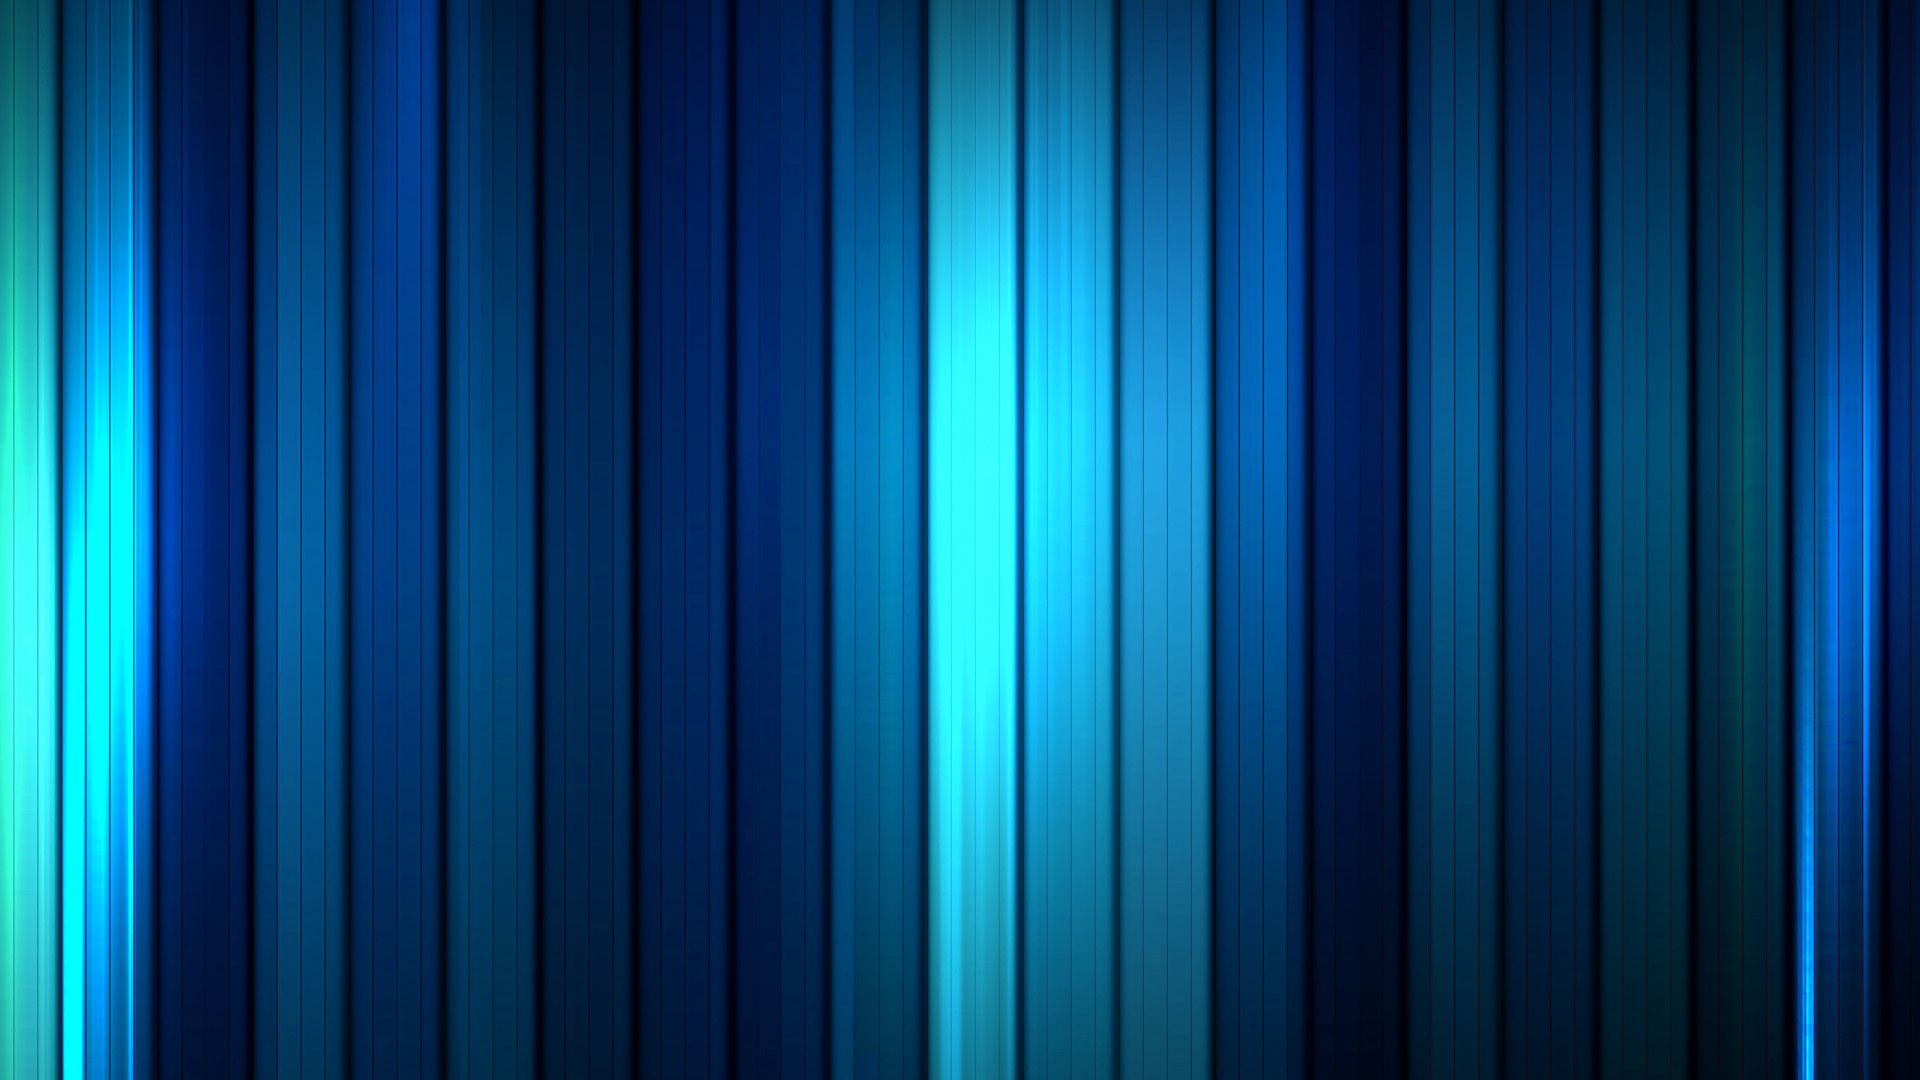 Free Colorful Modern Free Abstract Wallpaper Downloads Wallpaper